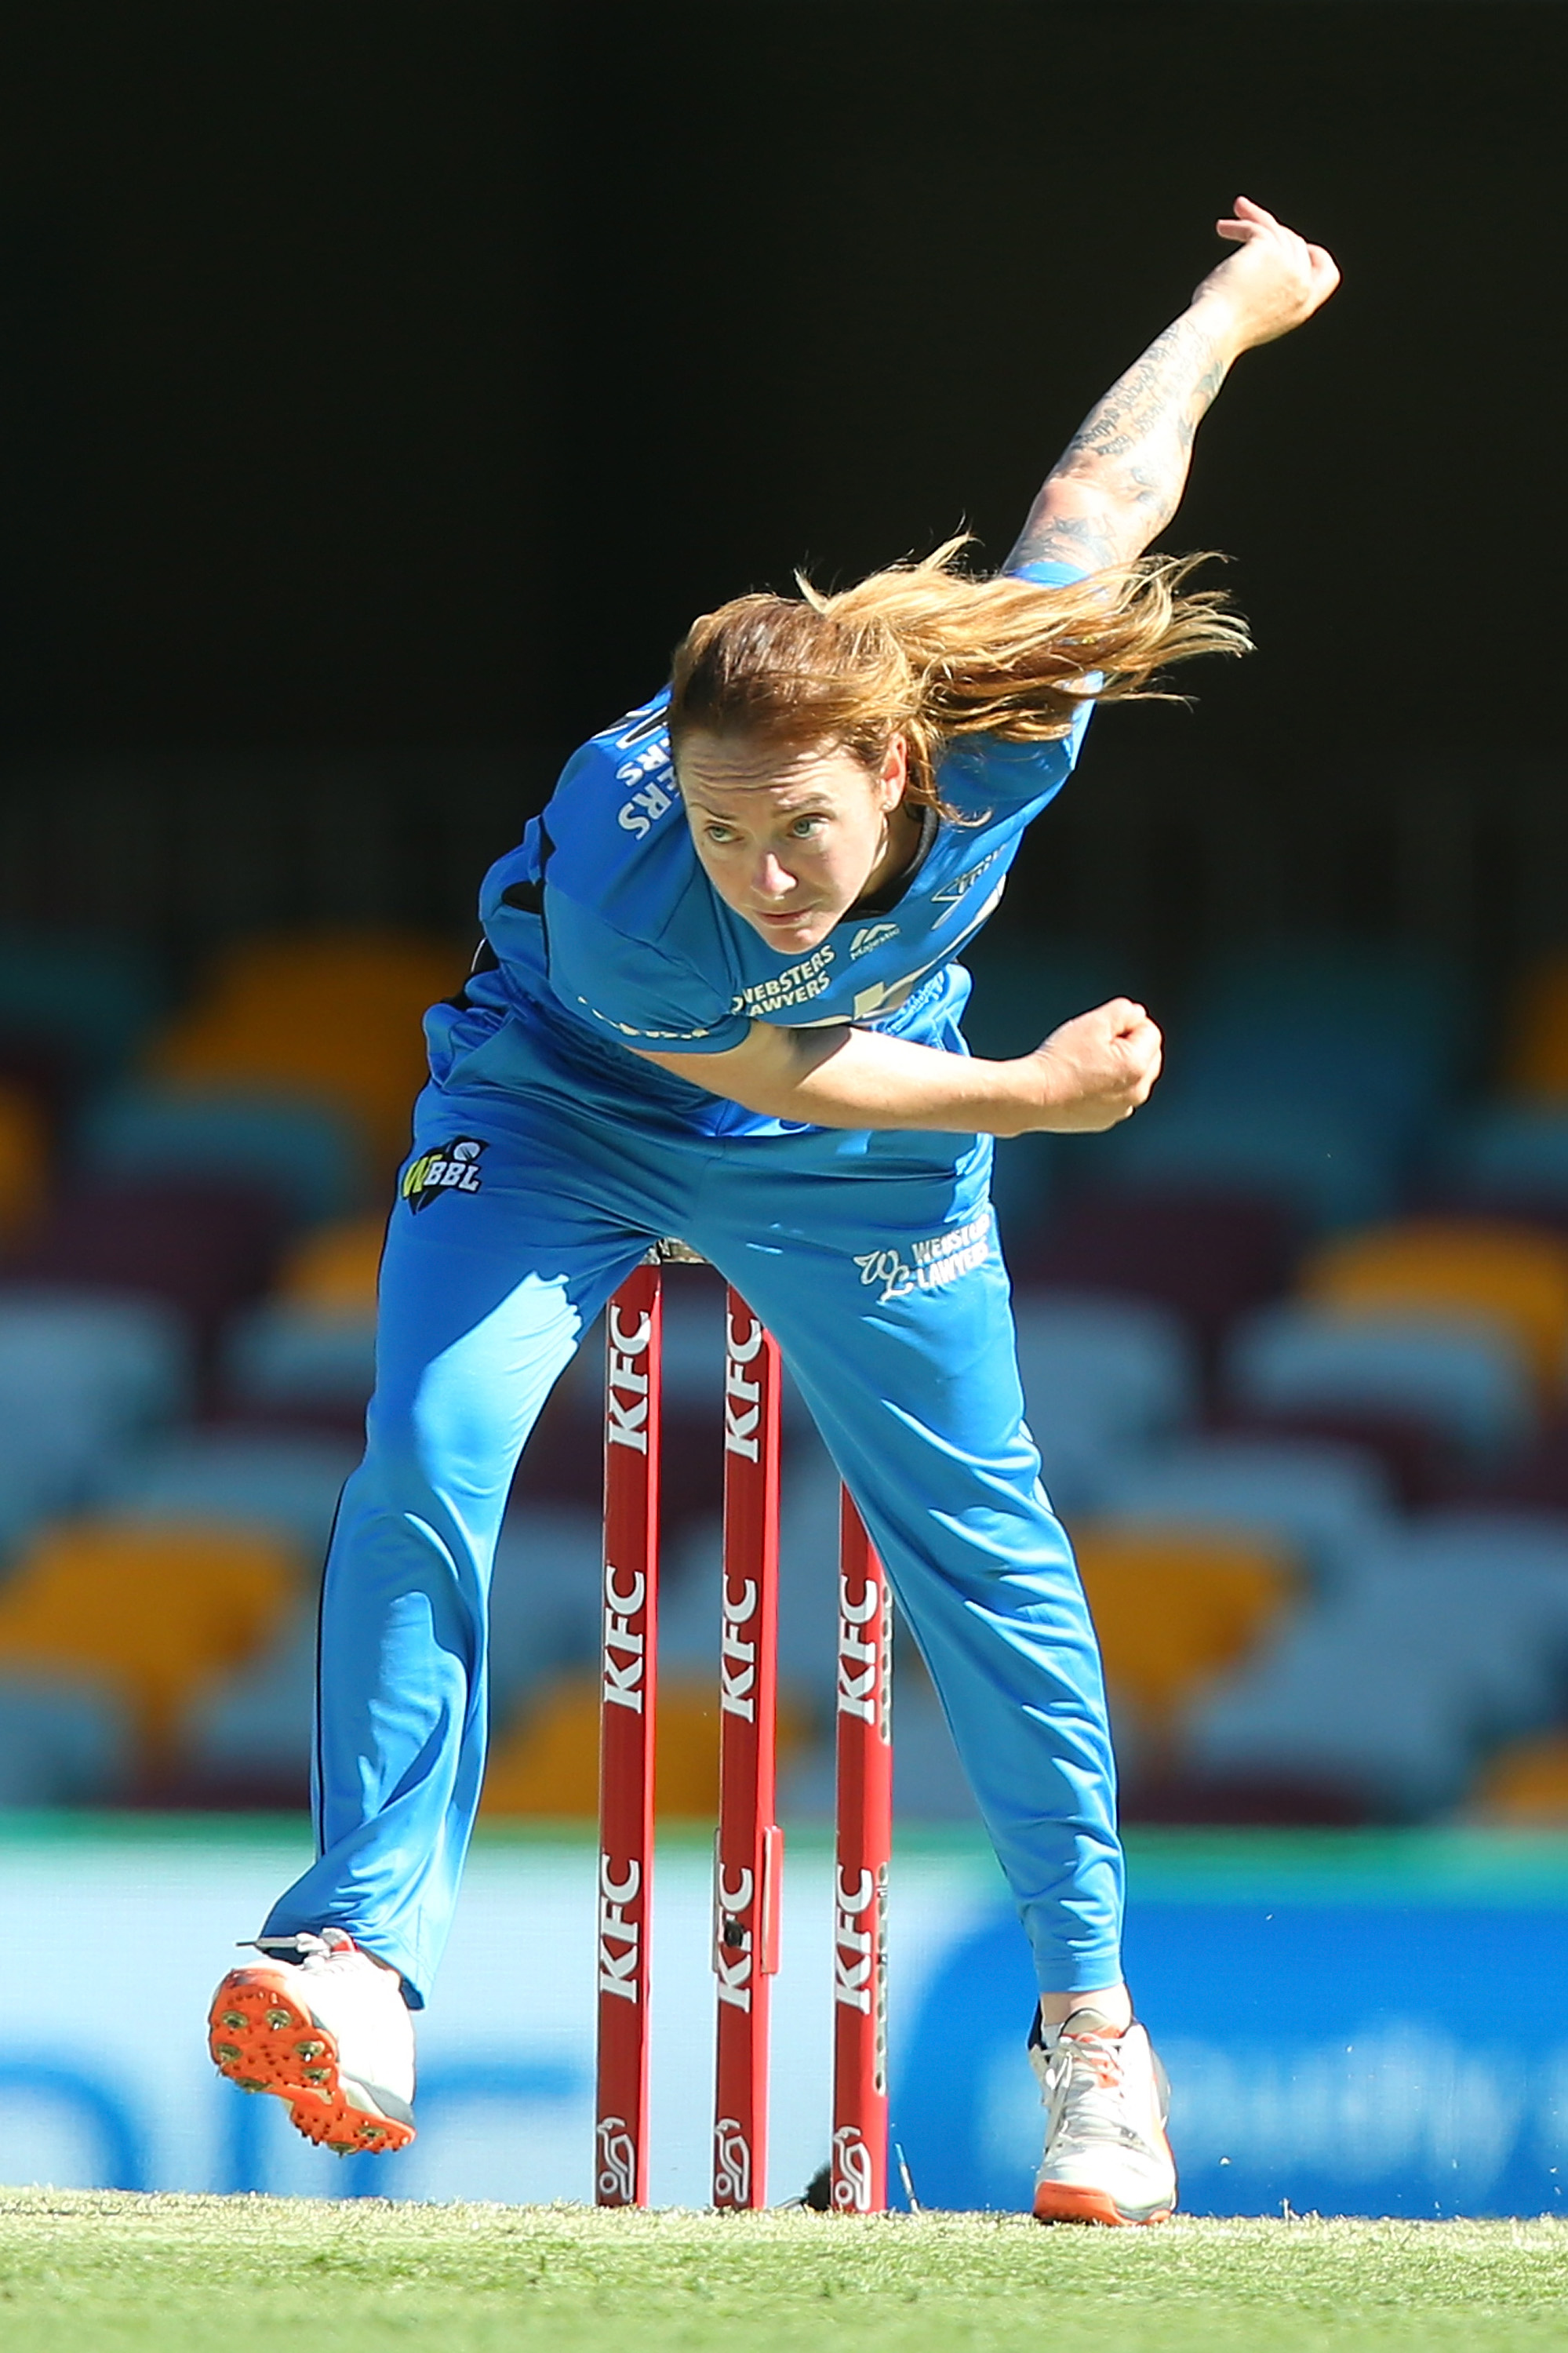 BRISBANE, AUSTRALIA - DECEMBER 19: Sarah Coyte of the Strikers bowls during the Women's Big Bash League match between the Brisbane Heat and the Adelaide Strikers at The Gabba on December 19, 2015 in Brisbane, Australia. (Photo by Chris Hyde - CA/Cricket Australia/Getty Images)